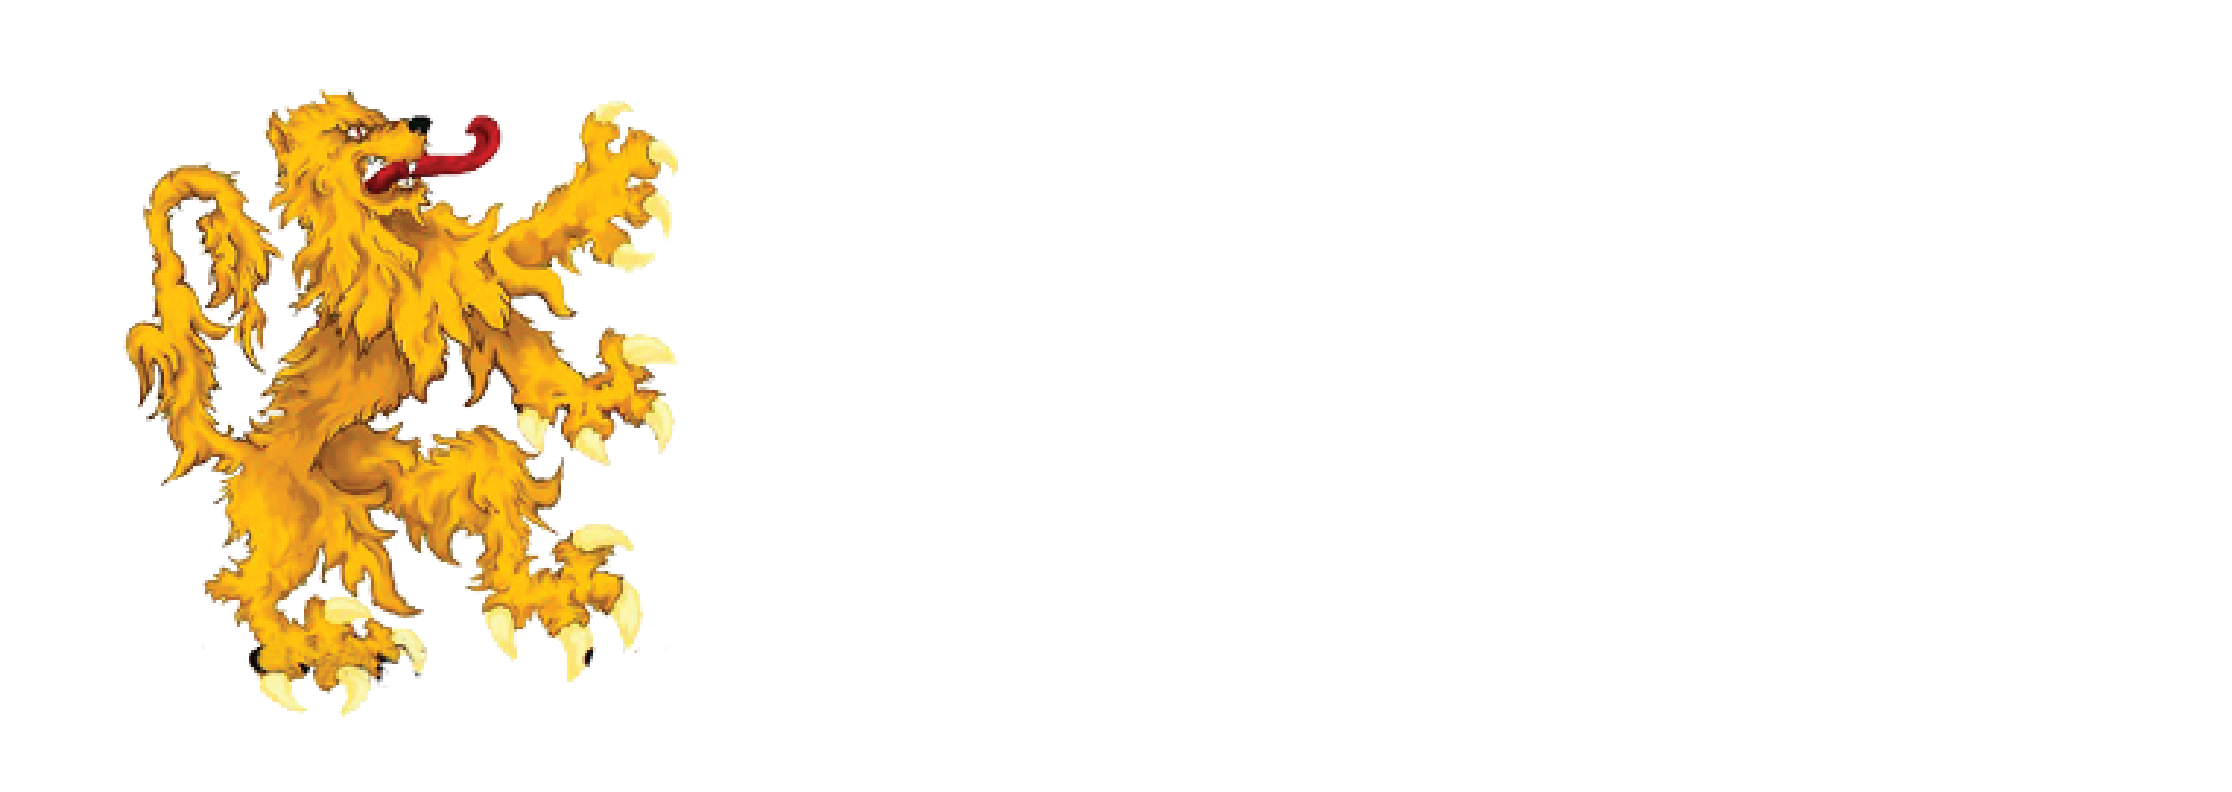 Beyond Painting and Remodeling